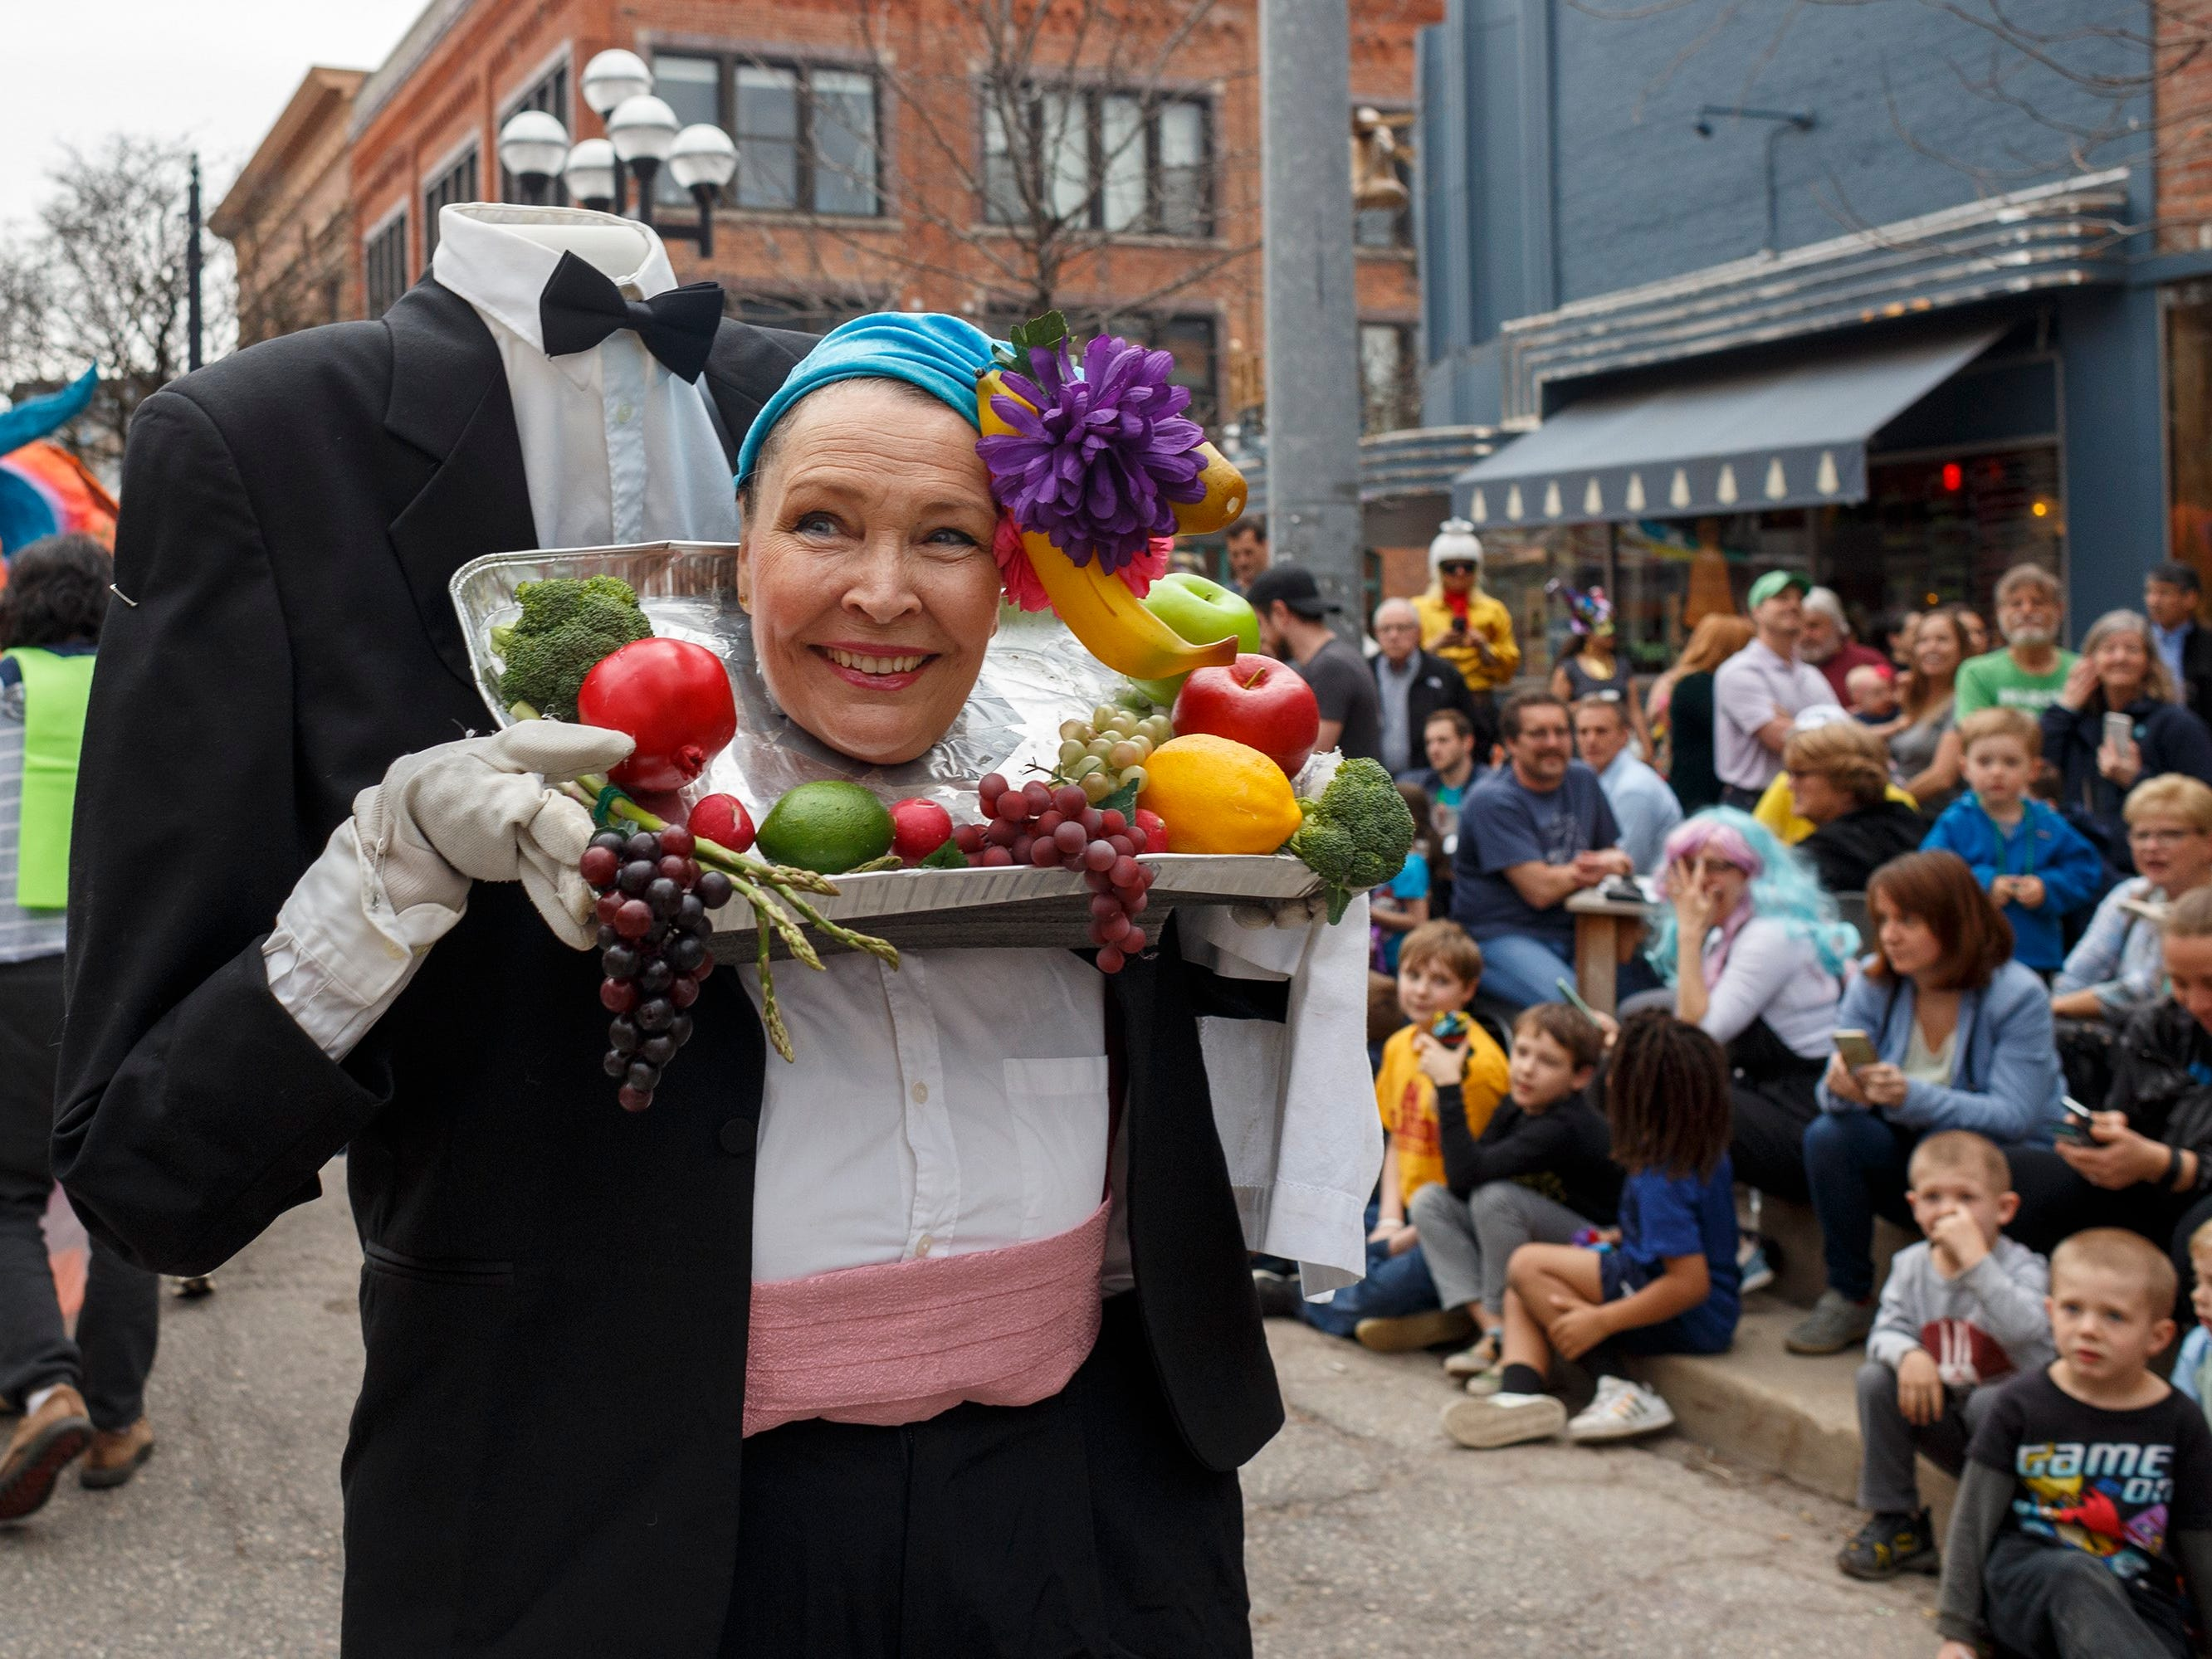 Carol Palms of Manchester makes her way down South Main Street during the annual FestiFools parade on Sunday, April 7, 2019 in downtown Ann Arbor.